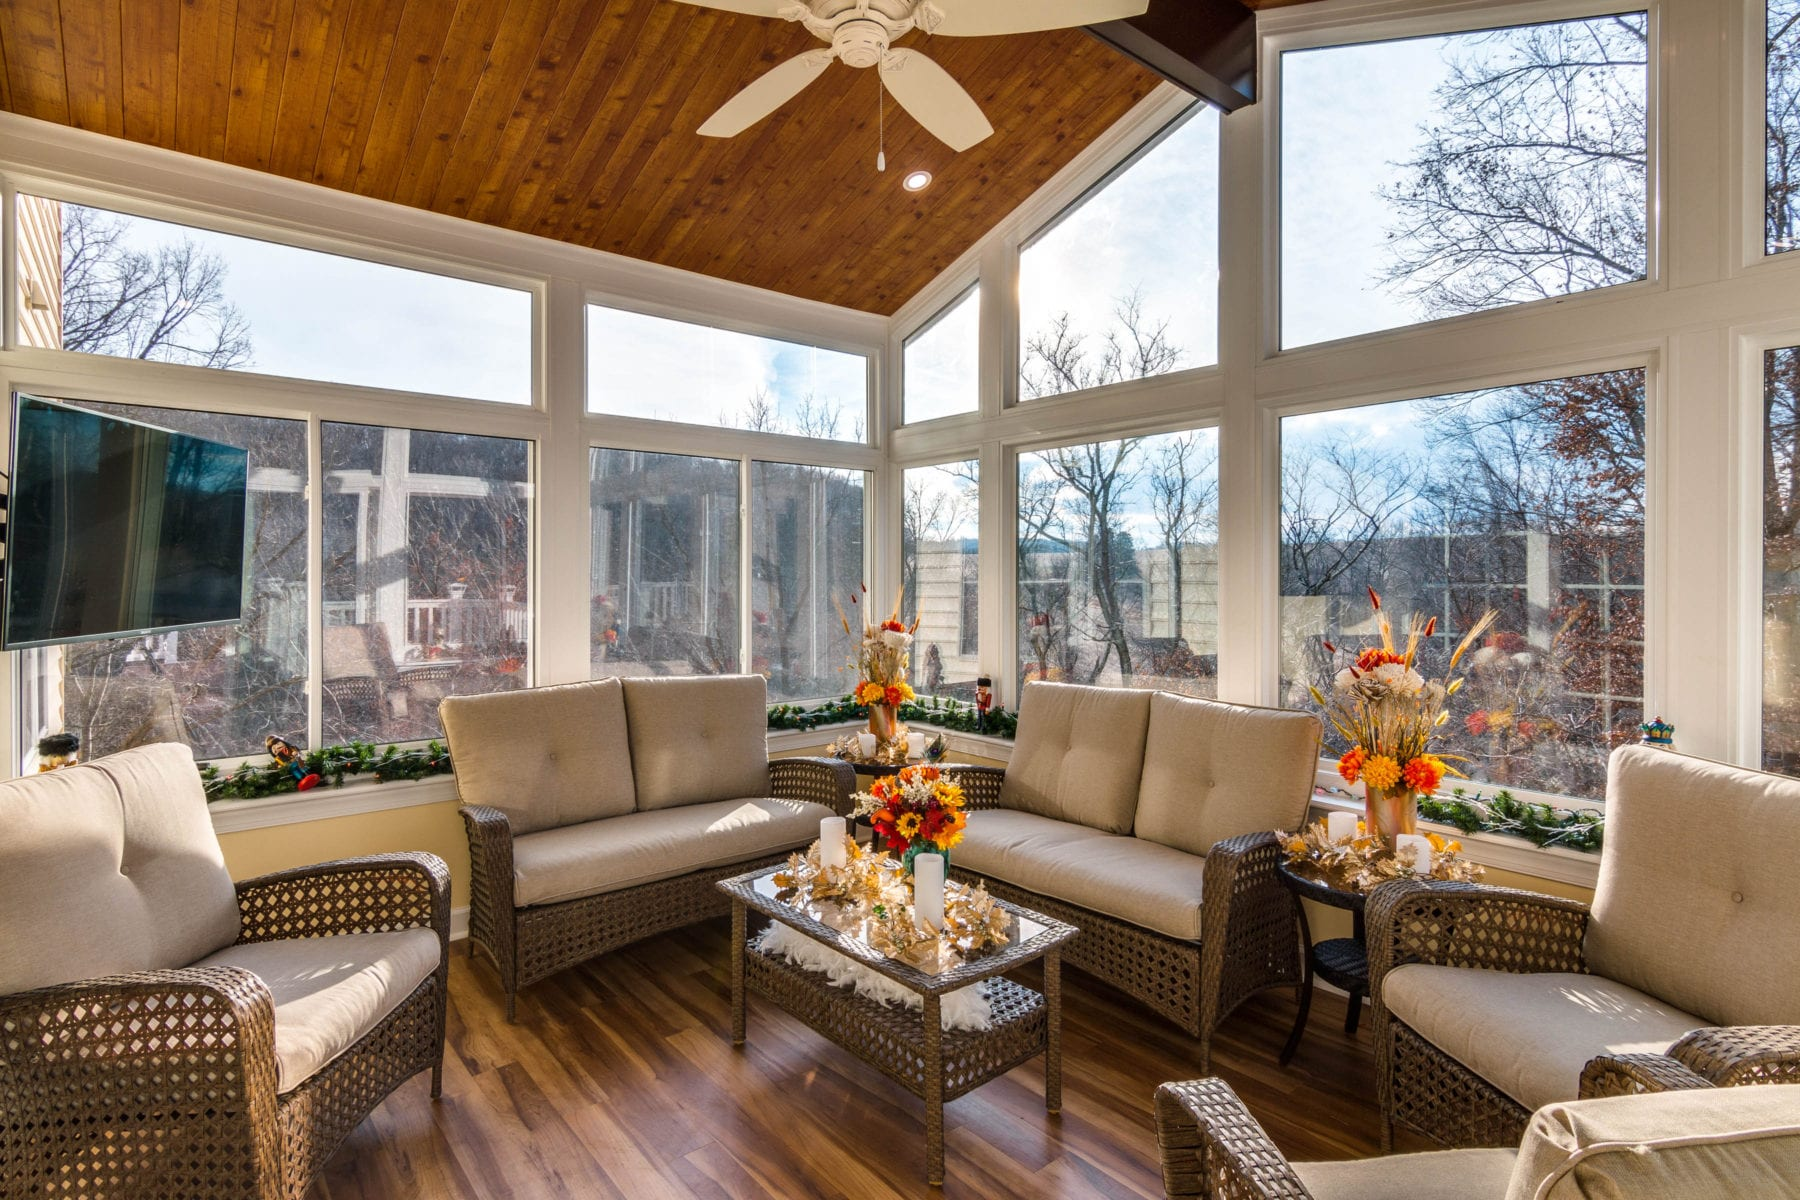 Living Space Sunrooms and Patio Enclosures in Maryland on Patio Enclosures  id=63907